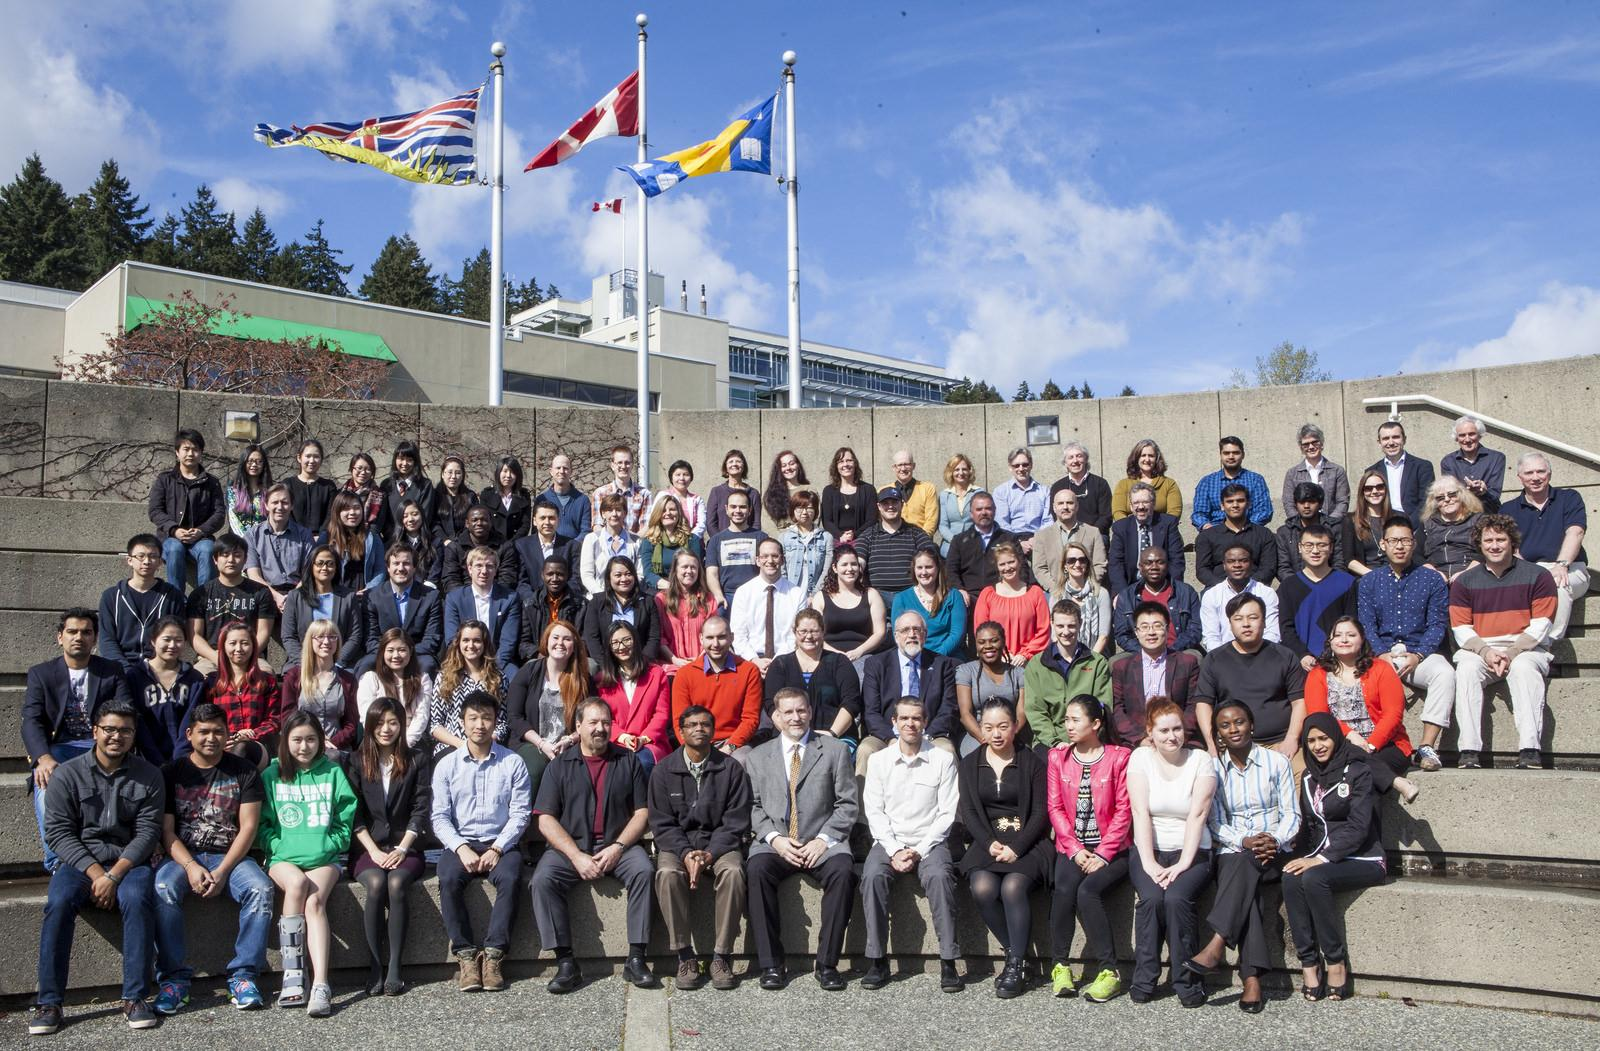 Graduating FOM students June 2015 and FOM employees